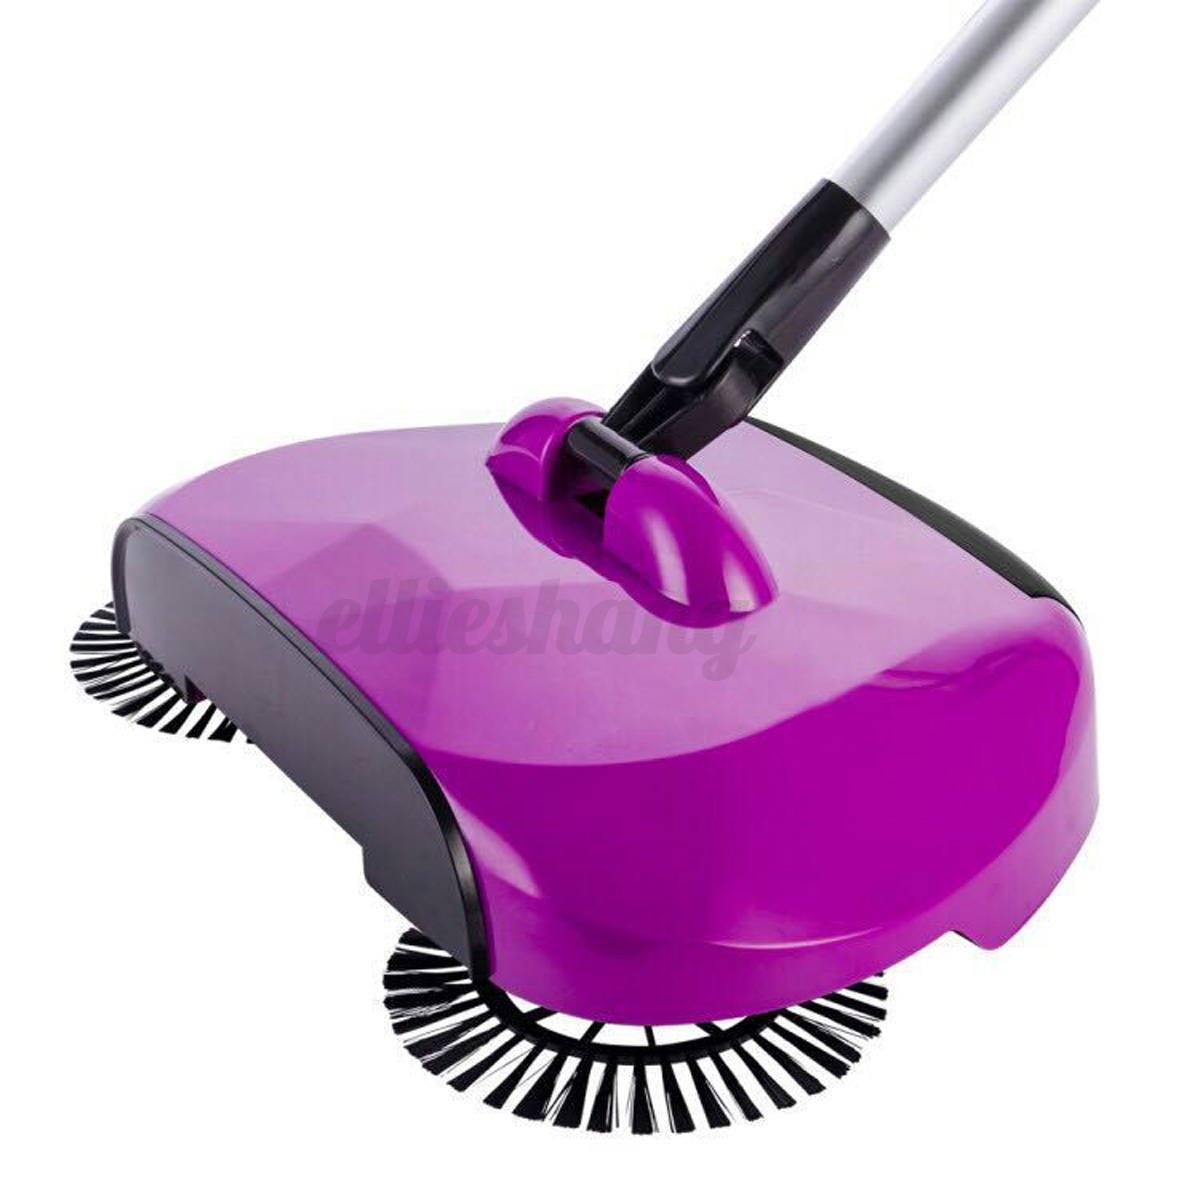 Automatic Spin Hand Push Sweeper Broom Household Cleaning